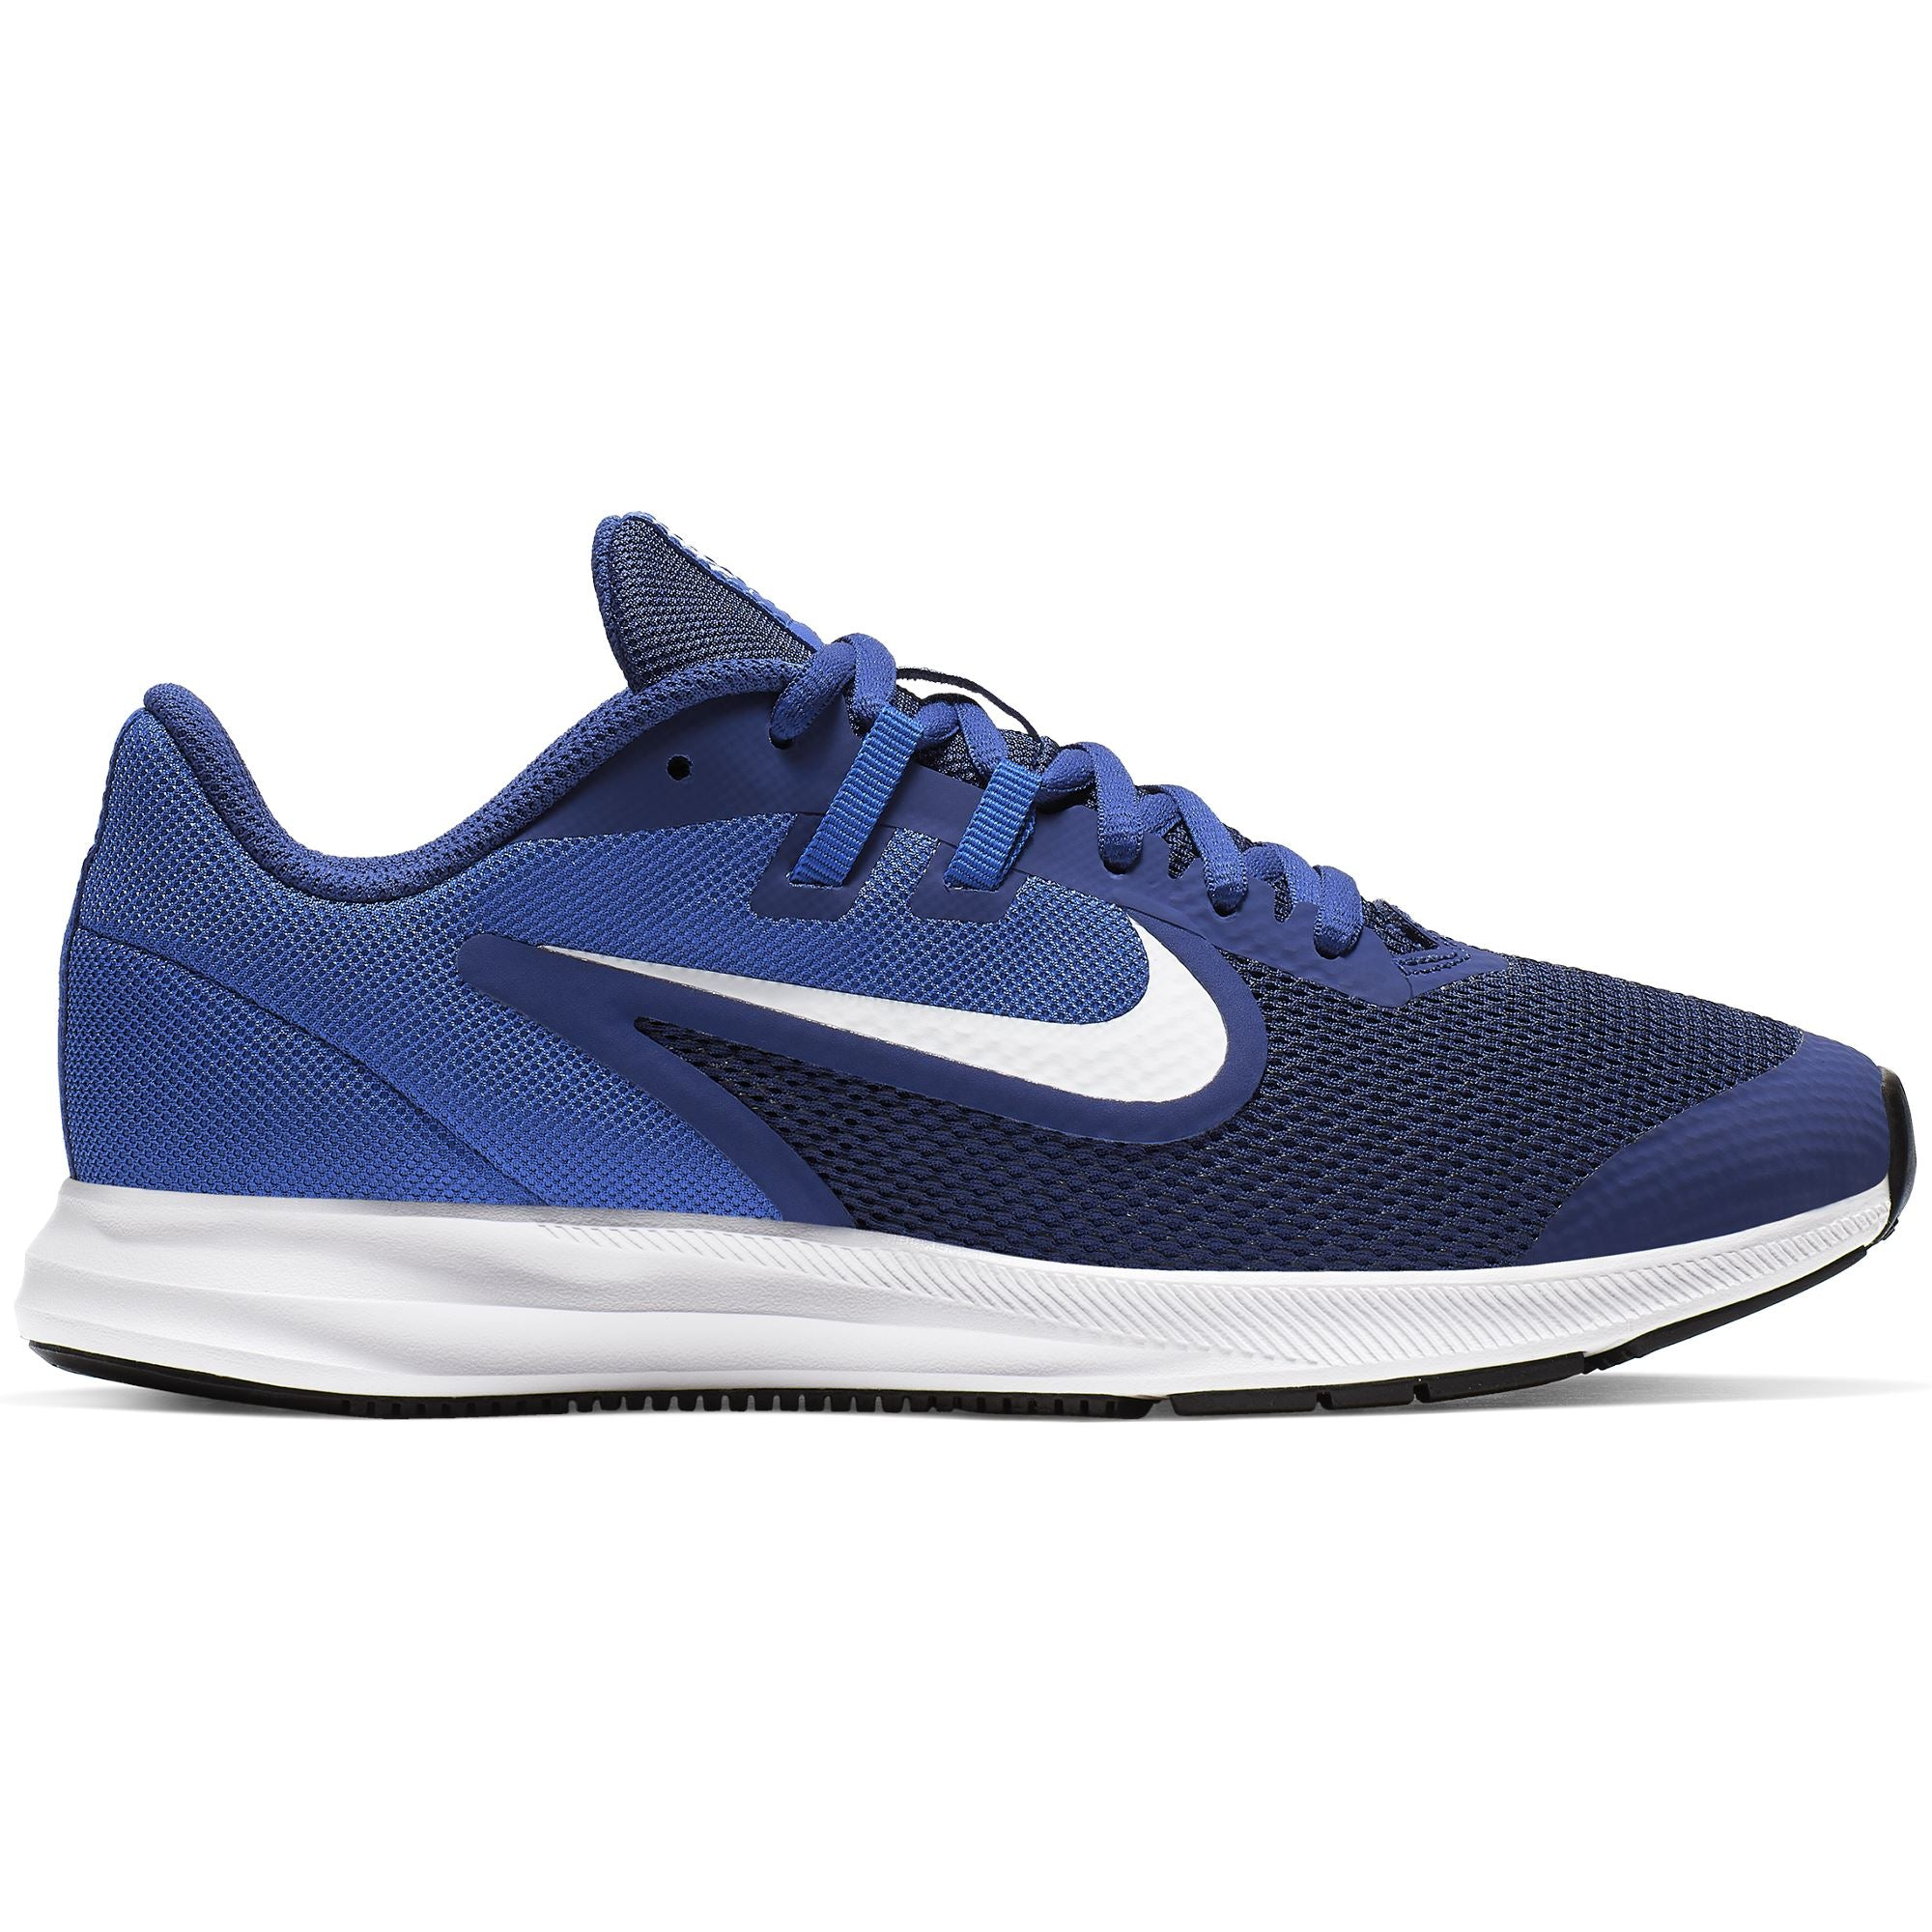 Nike Big Kids Downshifter 9 - Deep Royal Blue/White-Game Royal-Black Q3NIKE Nike